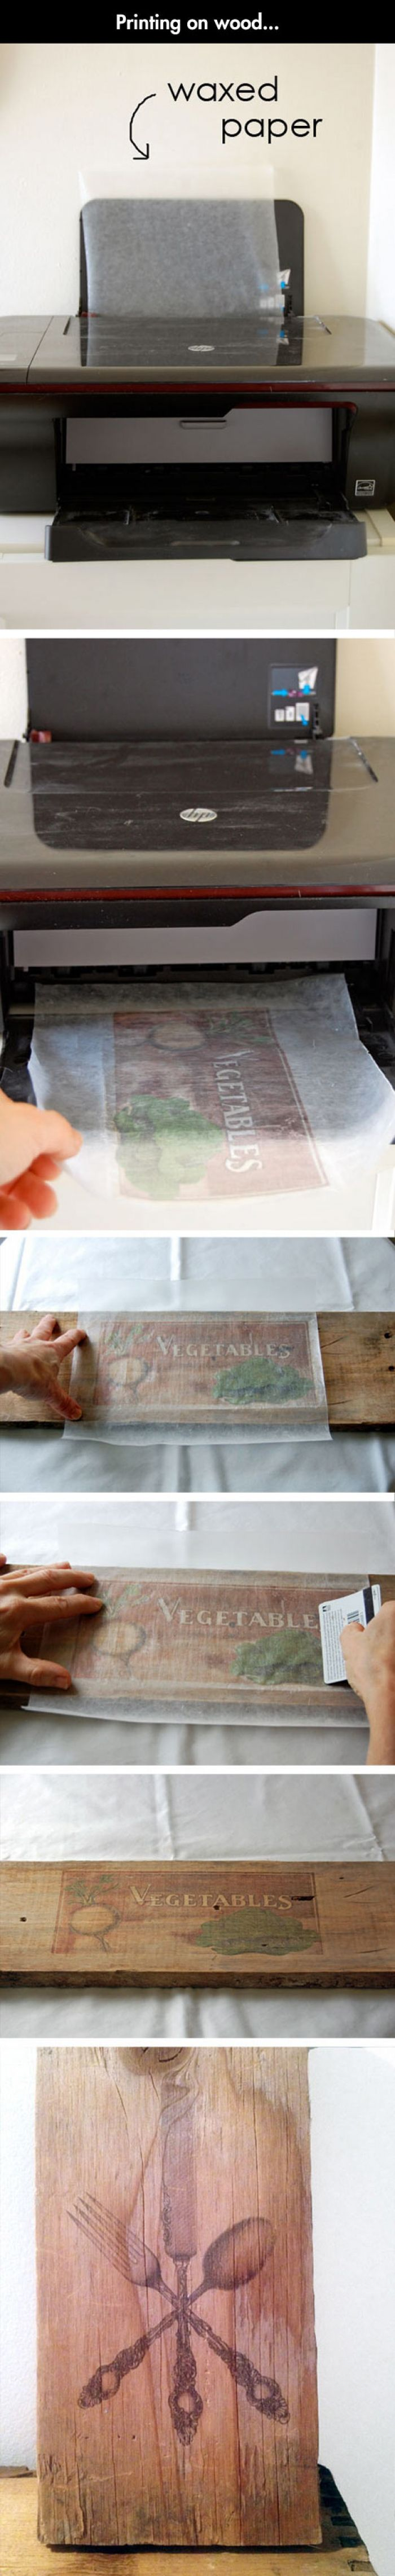 How To Properly Print On Wood